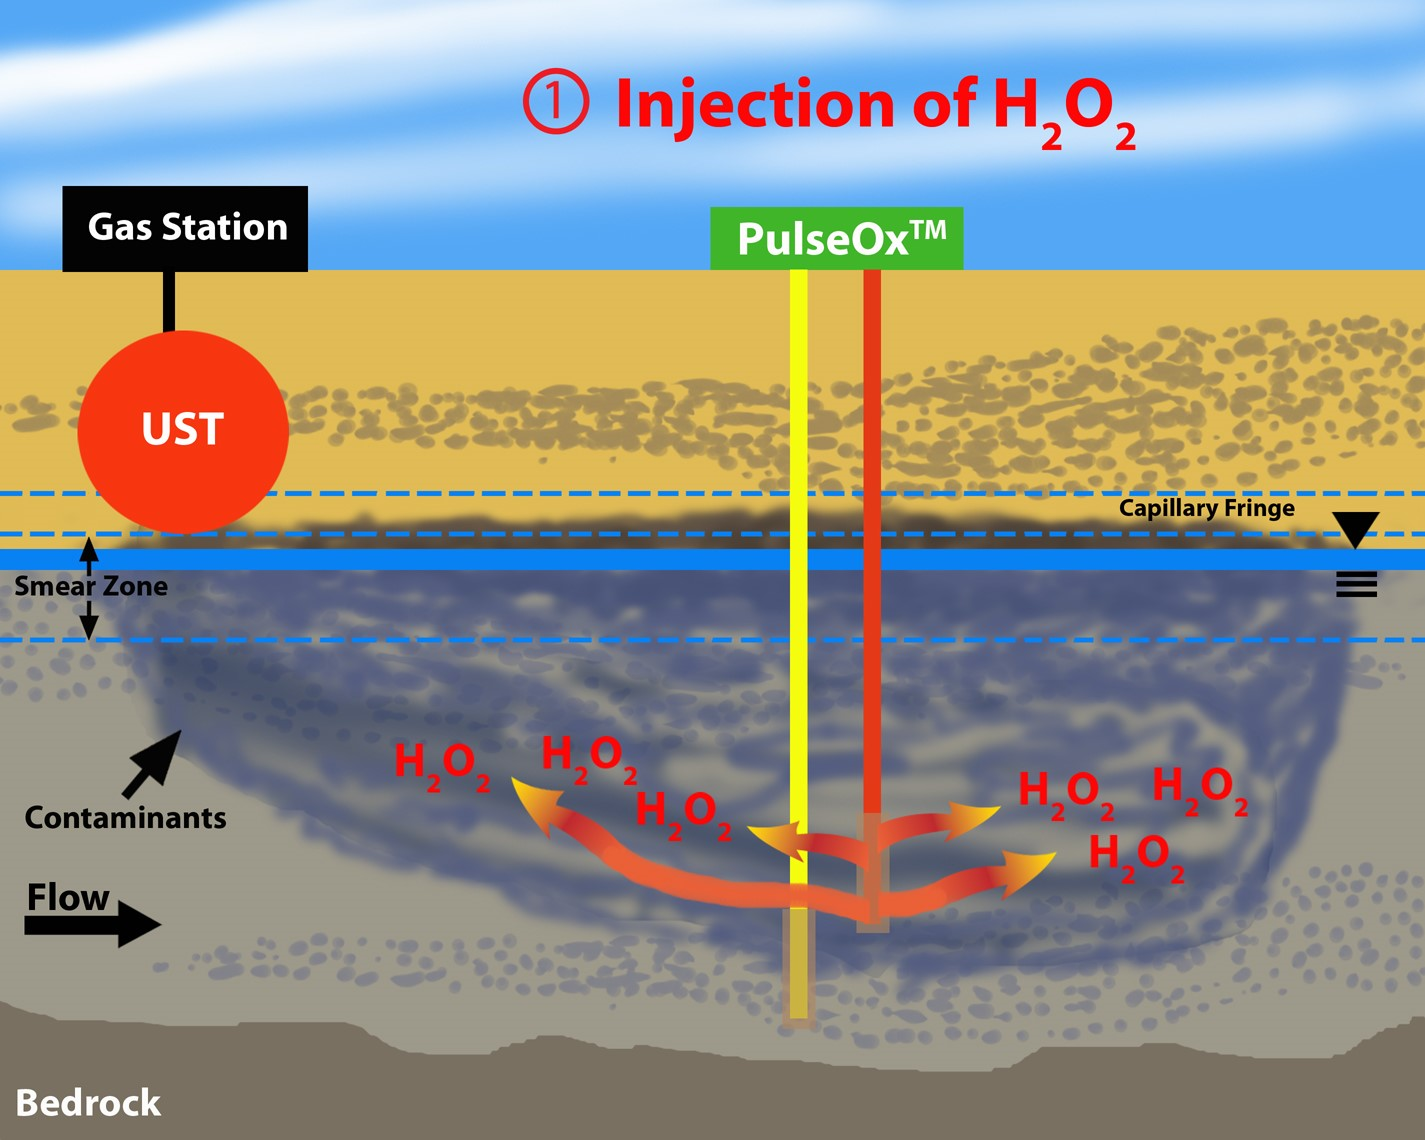 Step 1 - Injection Of H2 O2